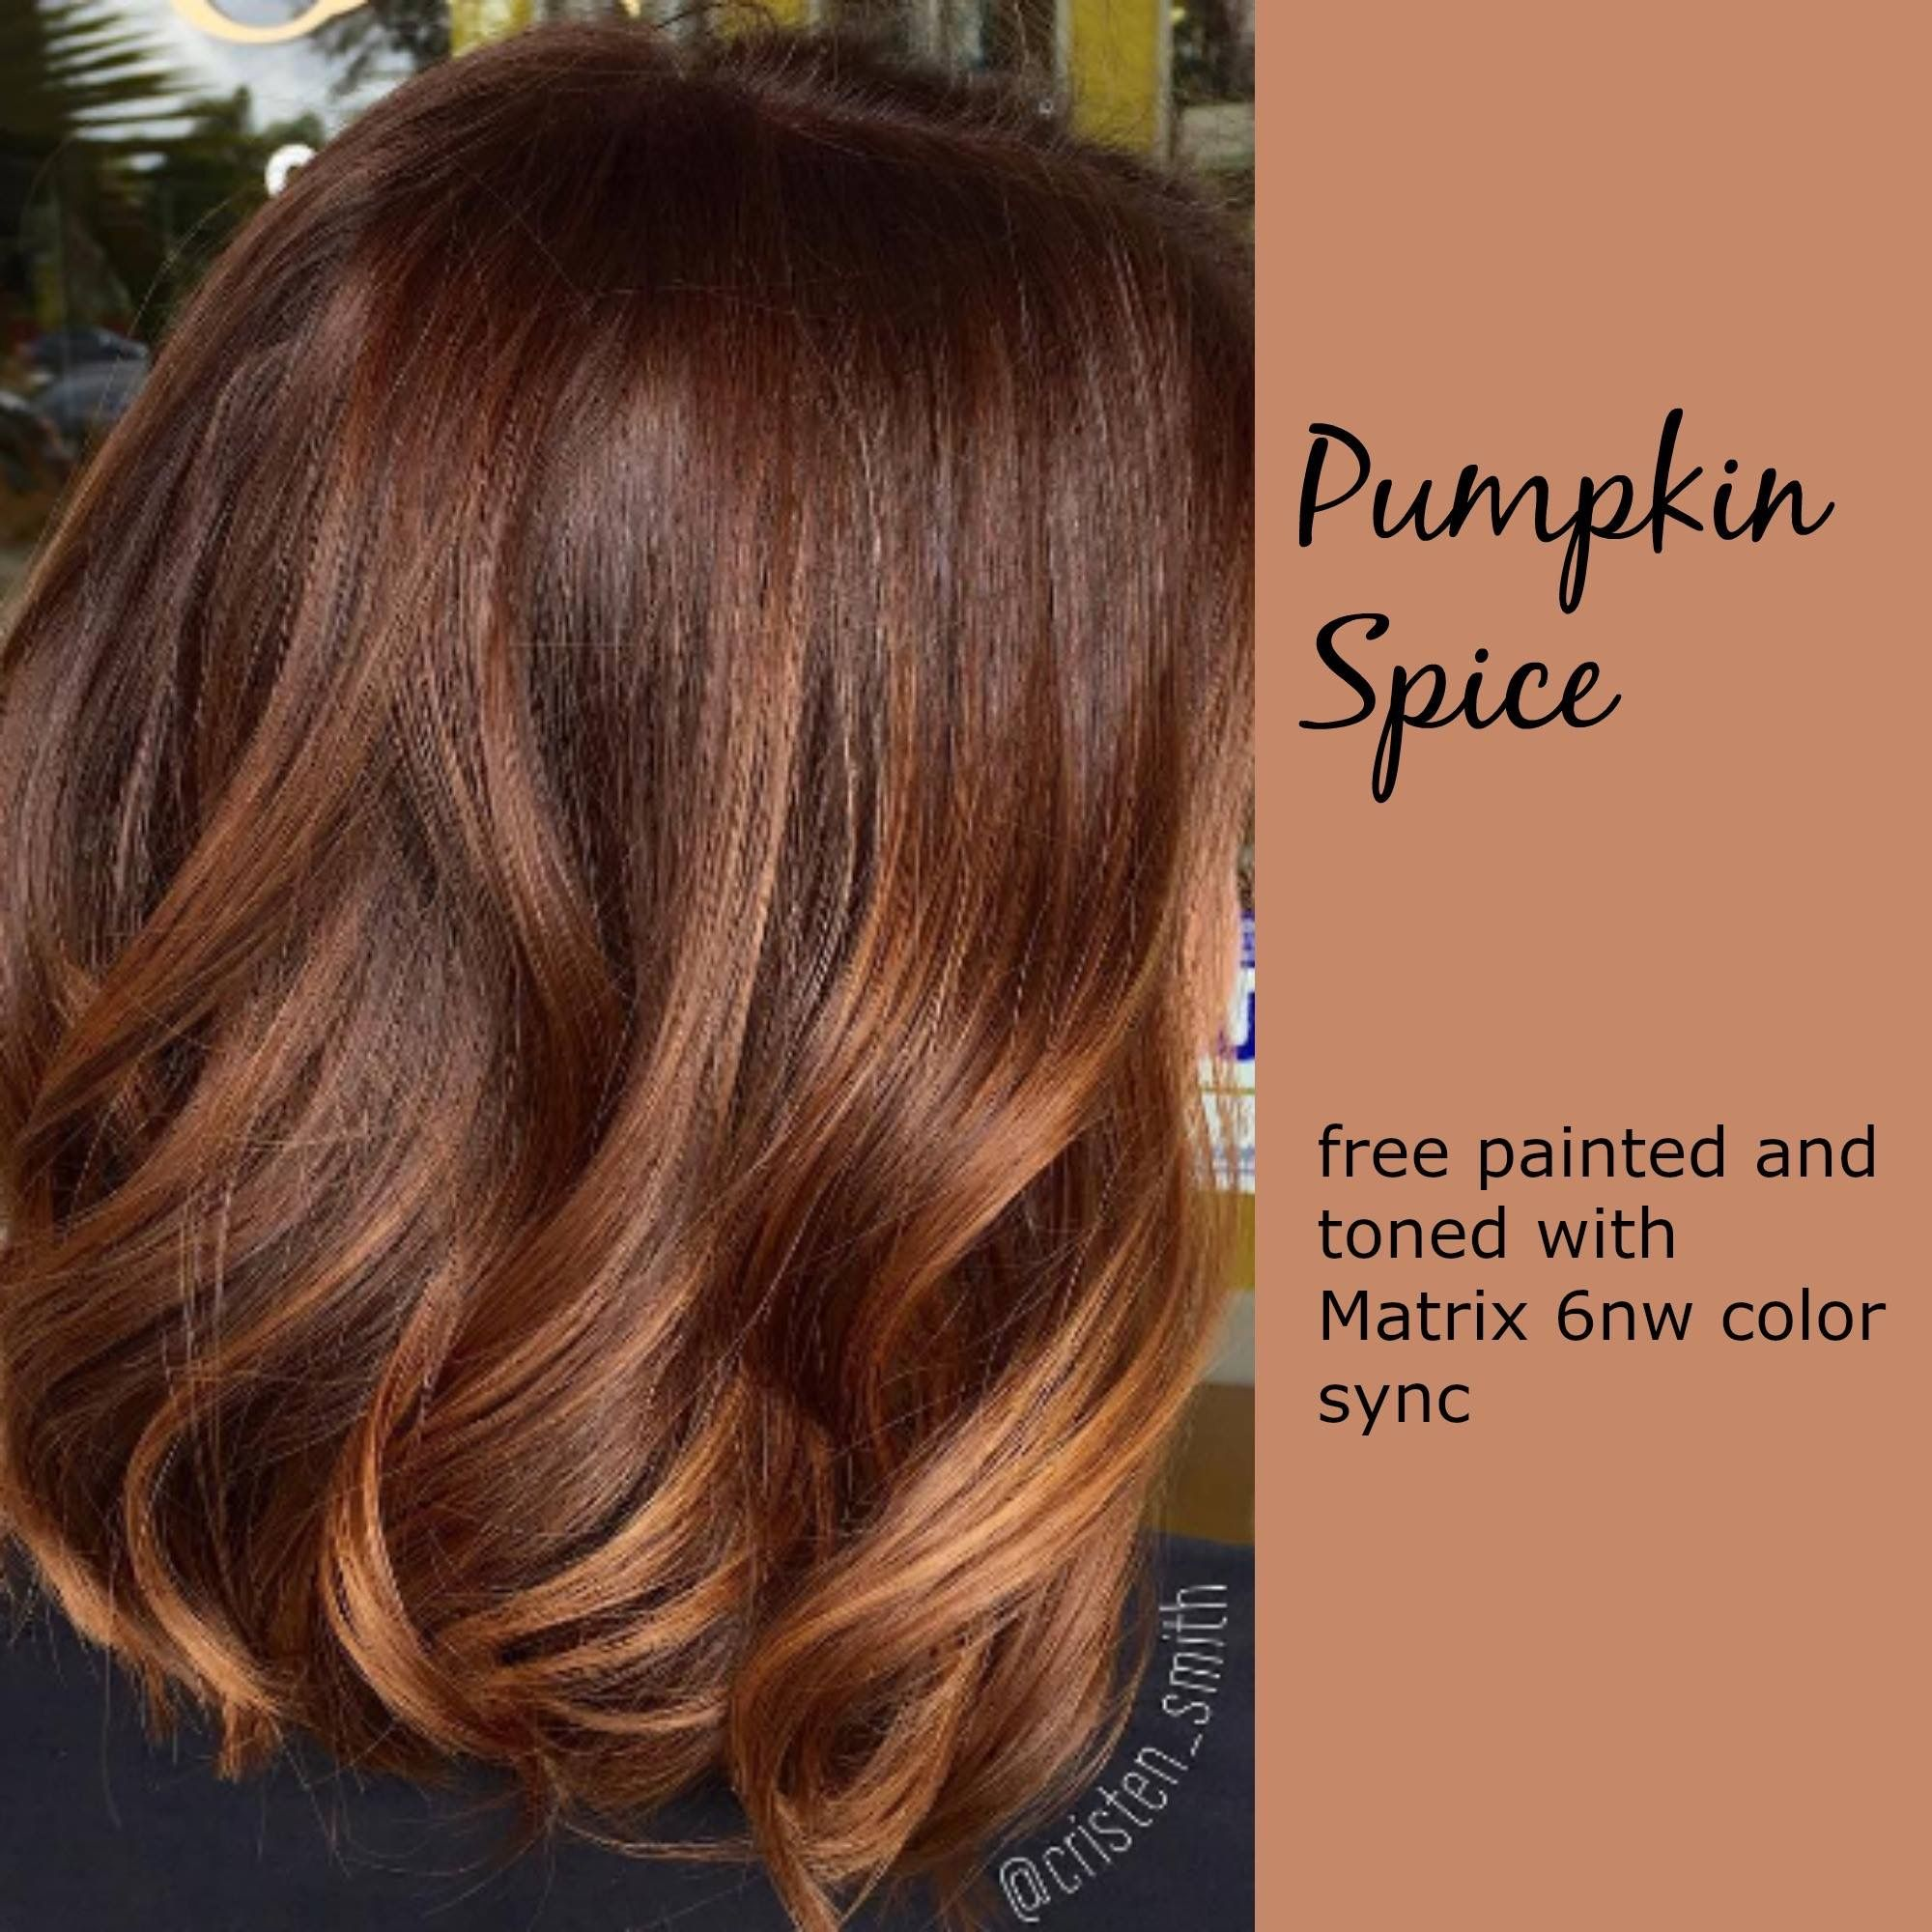 Pin By Amanda Martwick On Hair Ideas Pinterest Hair Coloring